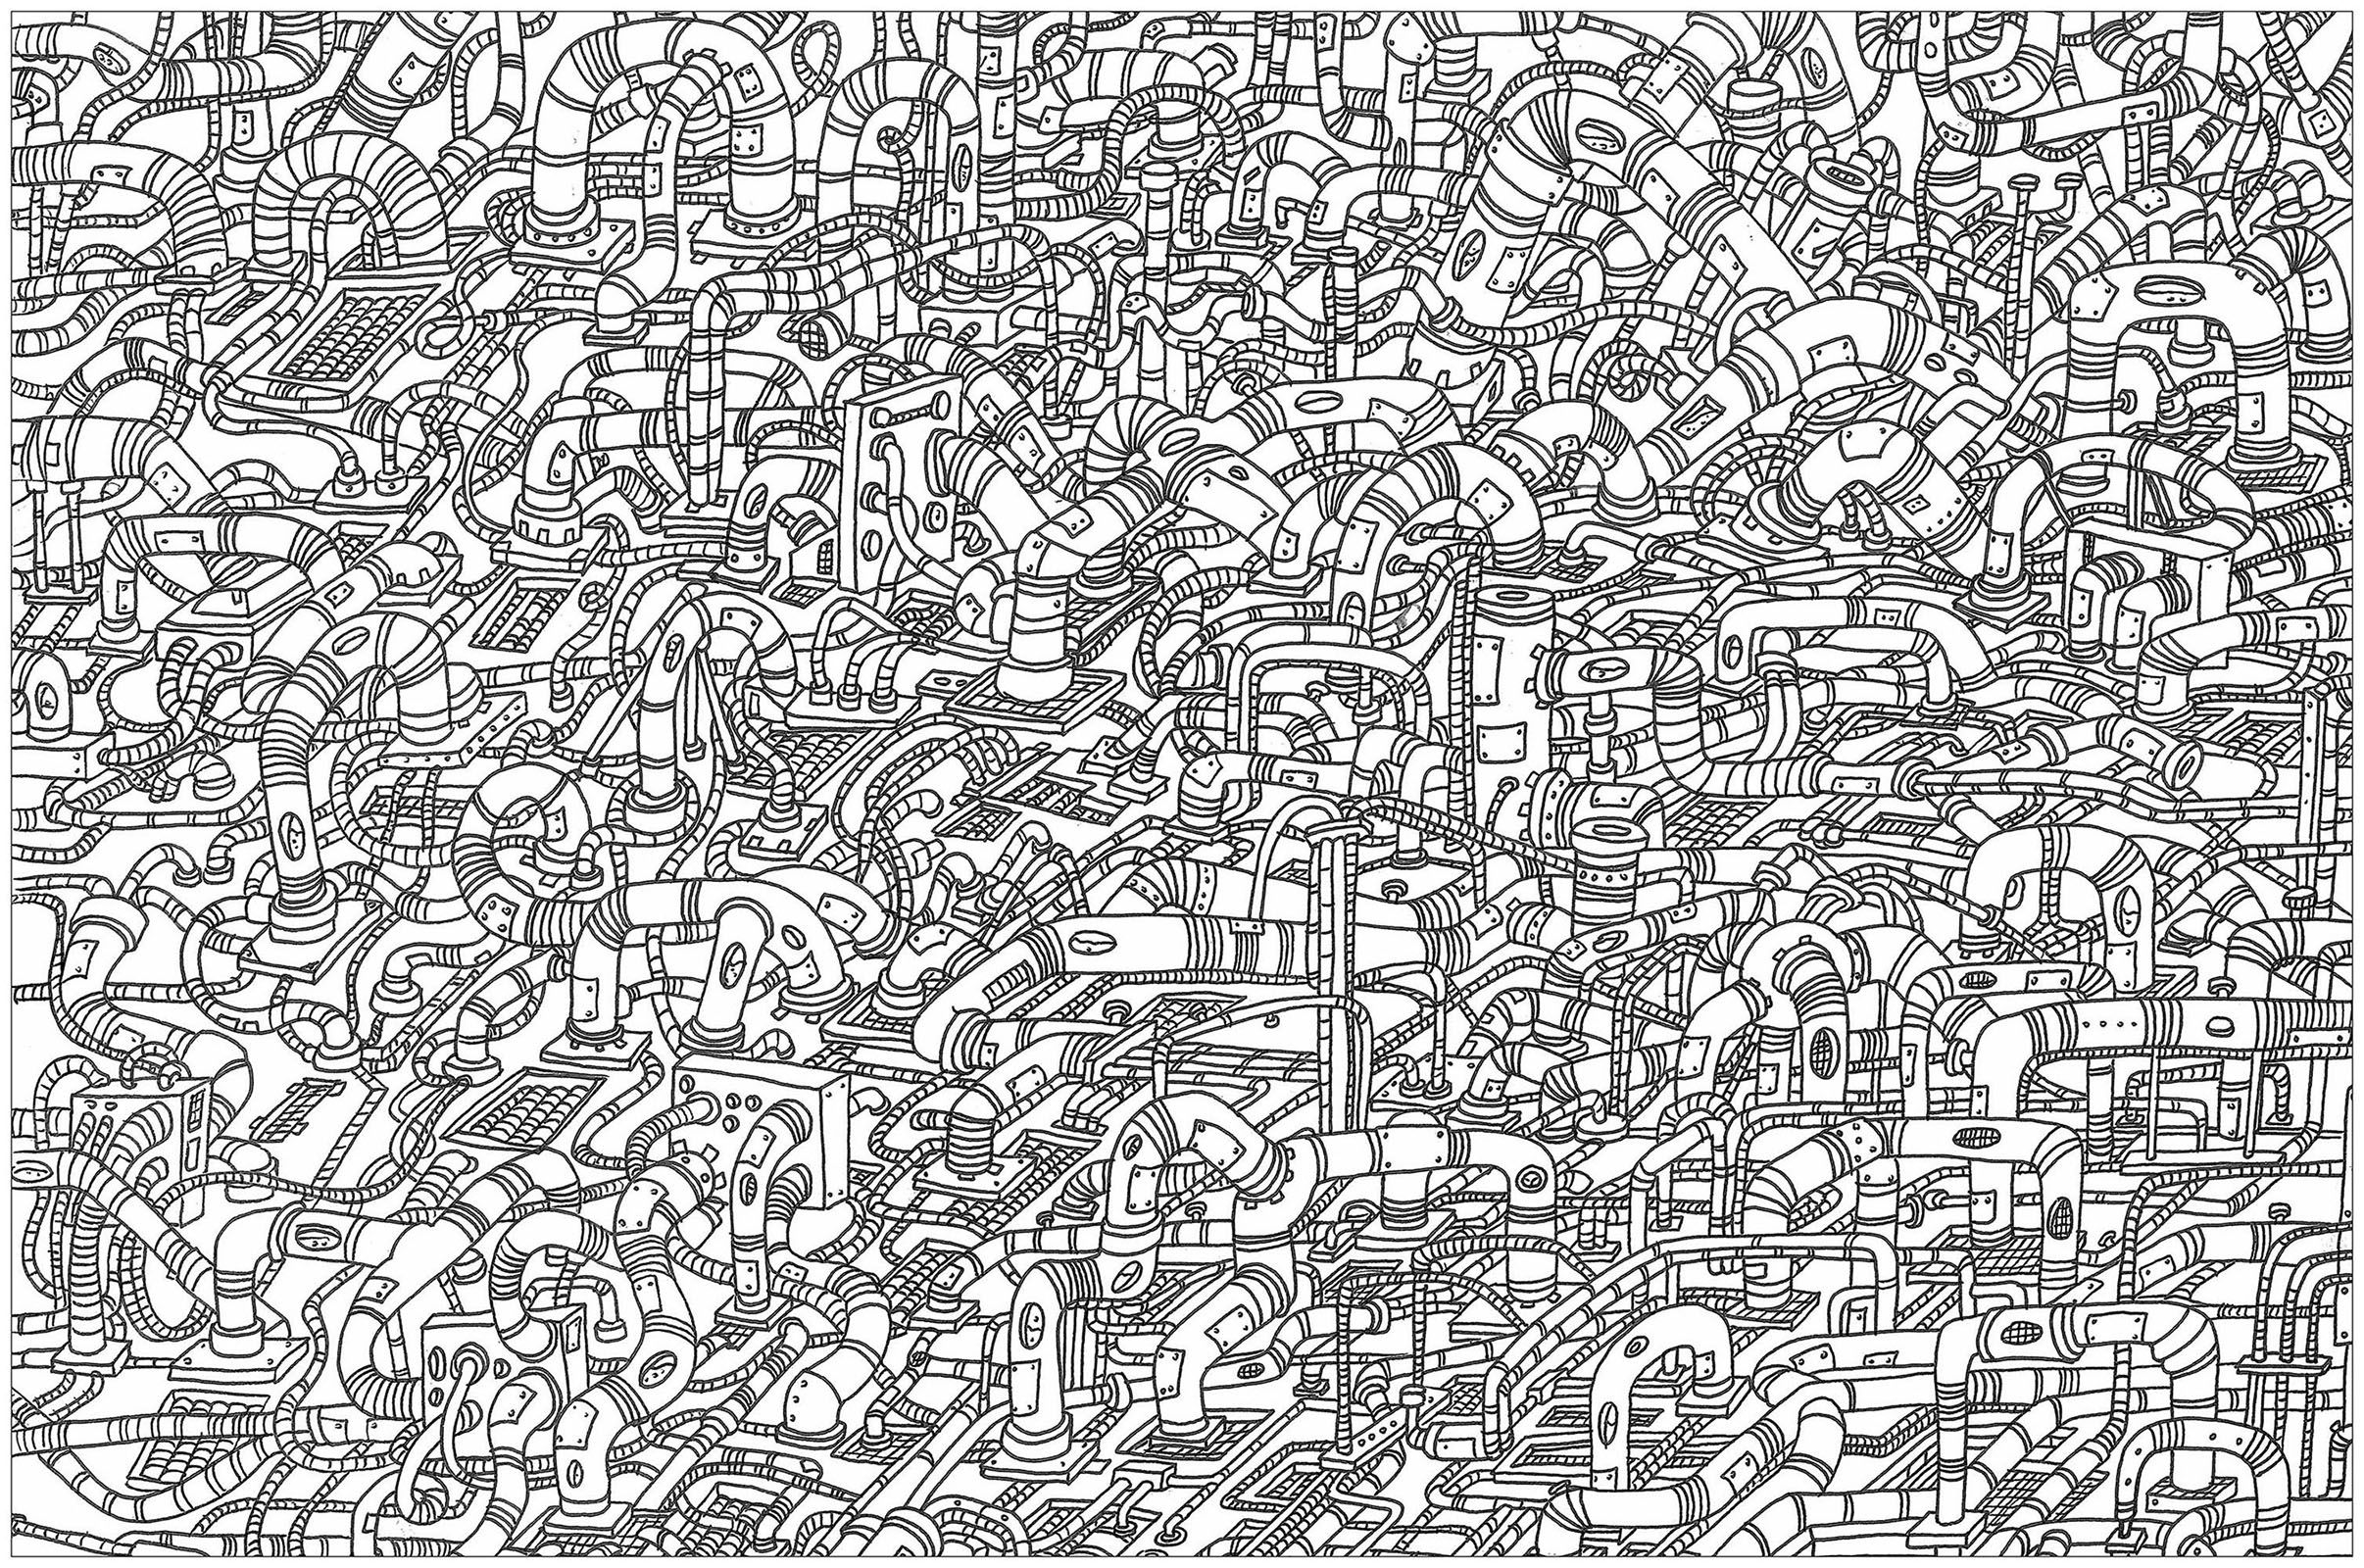 Hoses A Complex Coloring Page Where Is Waldo